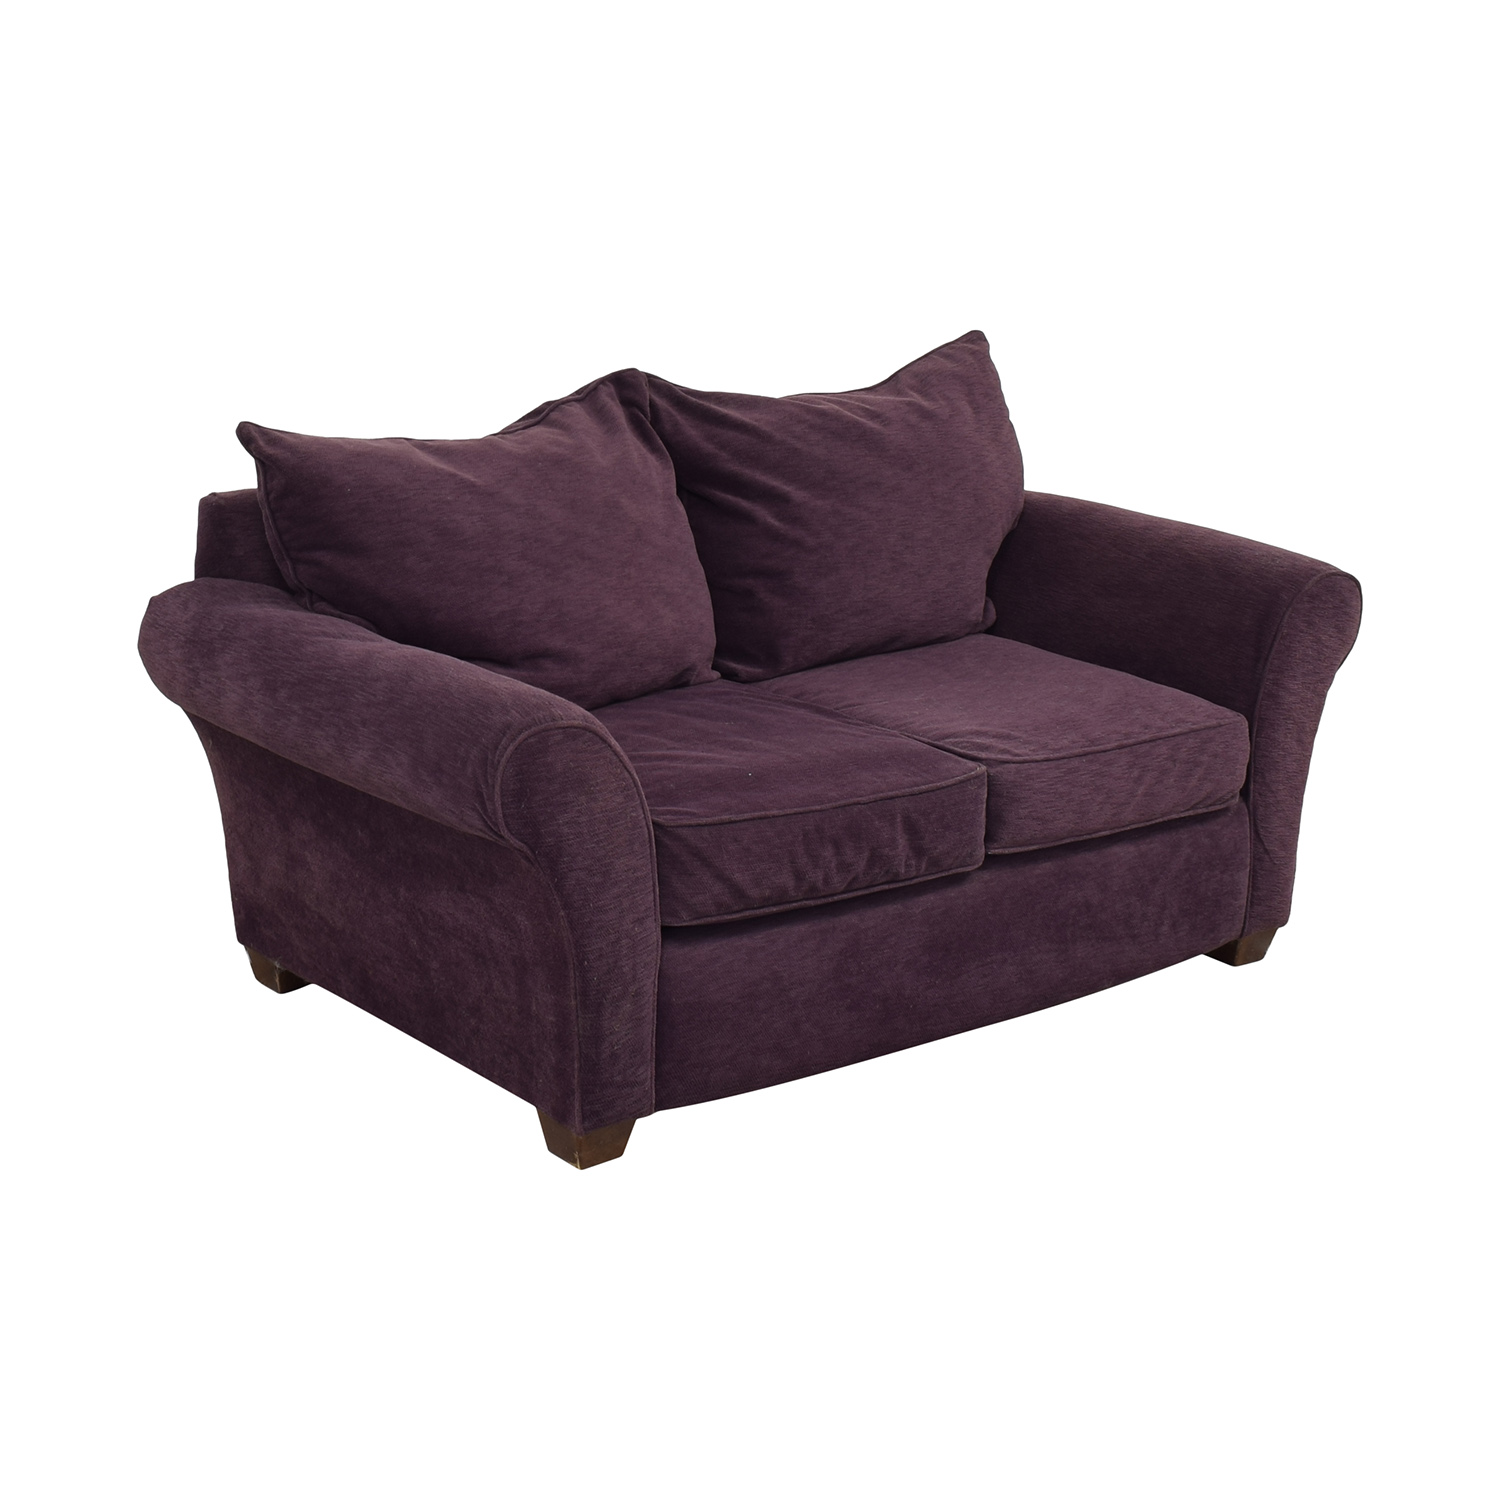 Alan White Roll Arm Loveseat / Loveseats